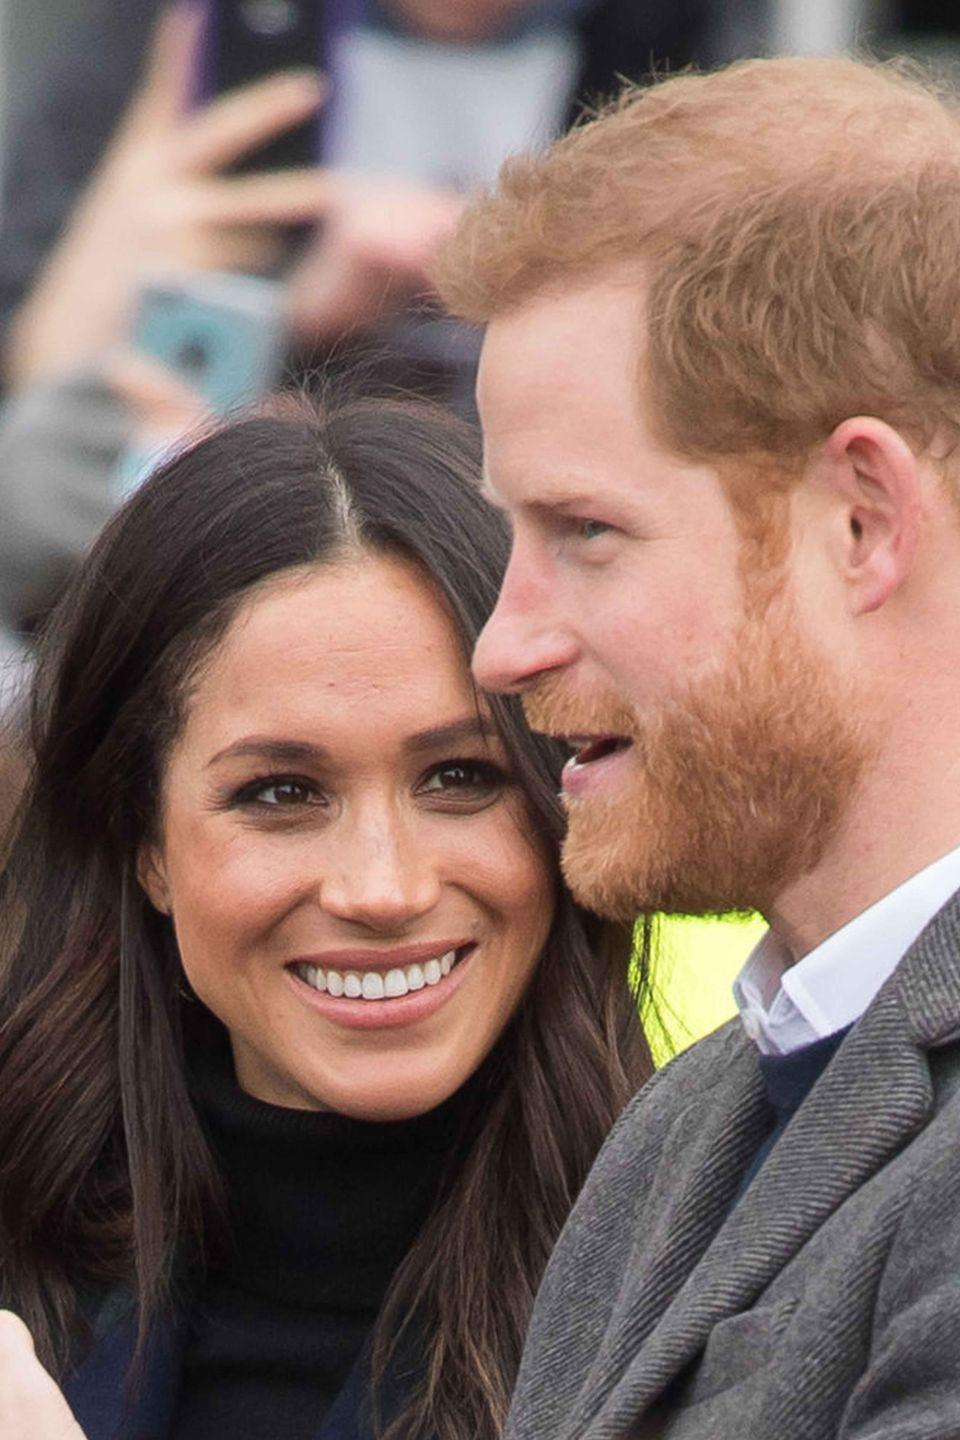 "<p><a href=""https://www.townandcountrymag.com/society/tradition/g17237029/photos-prince-harry-meghan-markle-edinburgh/"" rel=""nofollow noopener"" target=""_blank"" data-ylk=""slk:See more about their trip here."" class=""link rapid-noclick-resp"">See more about their trip here.</a></p>"